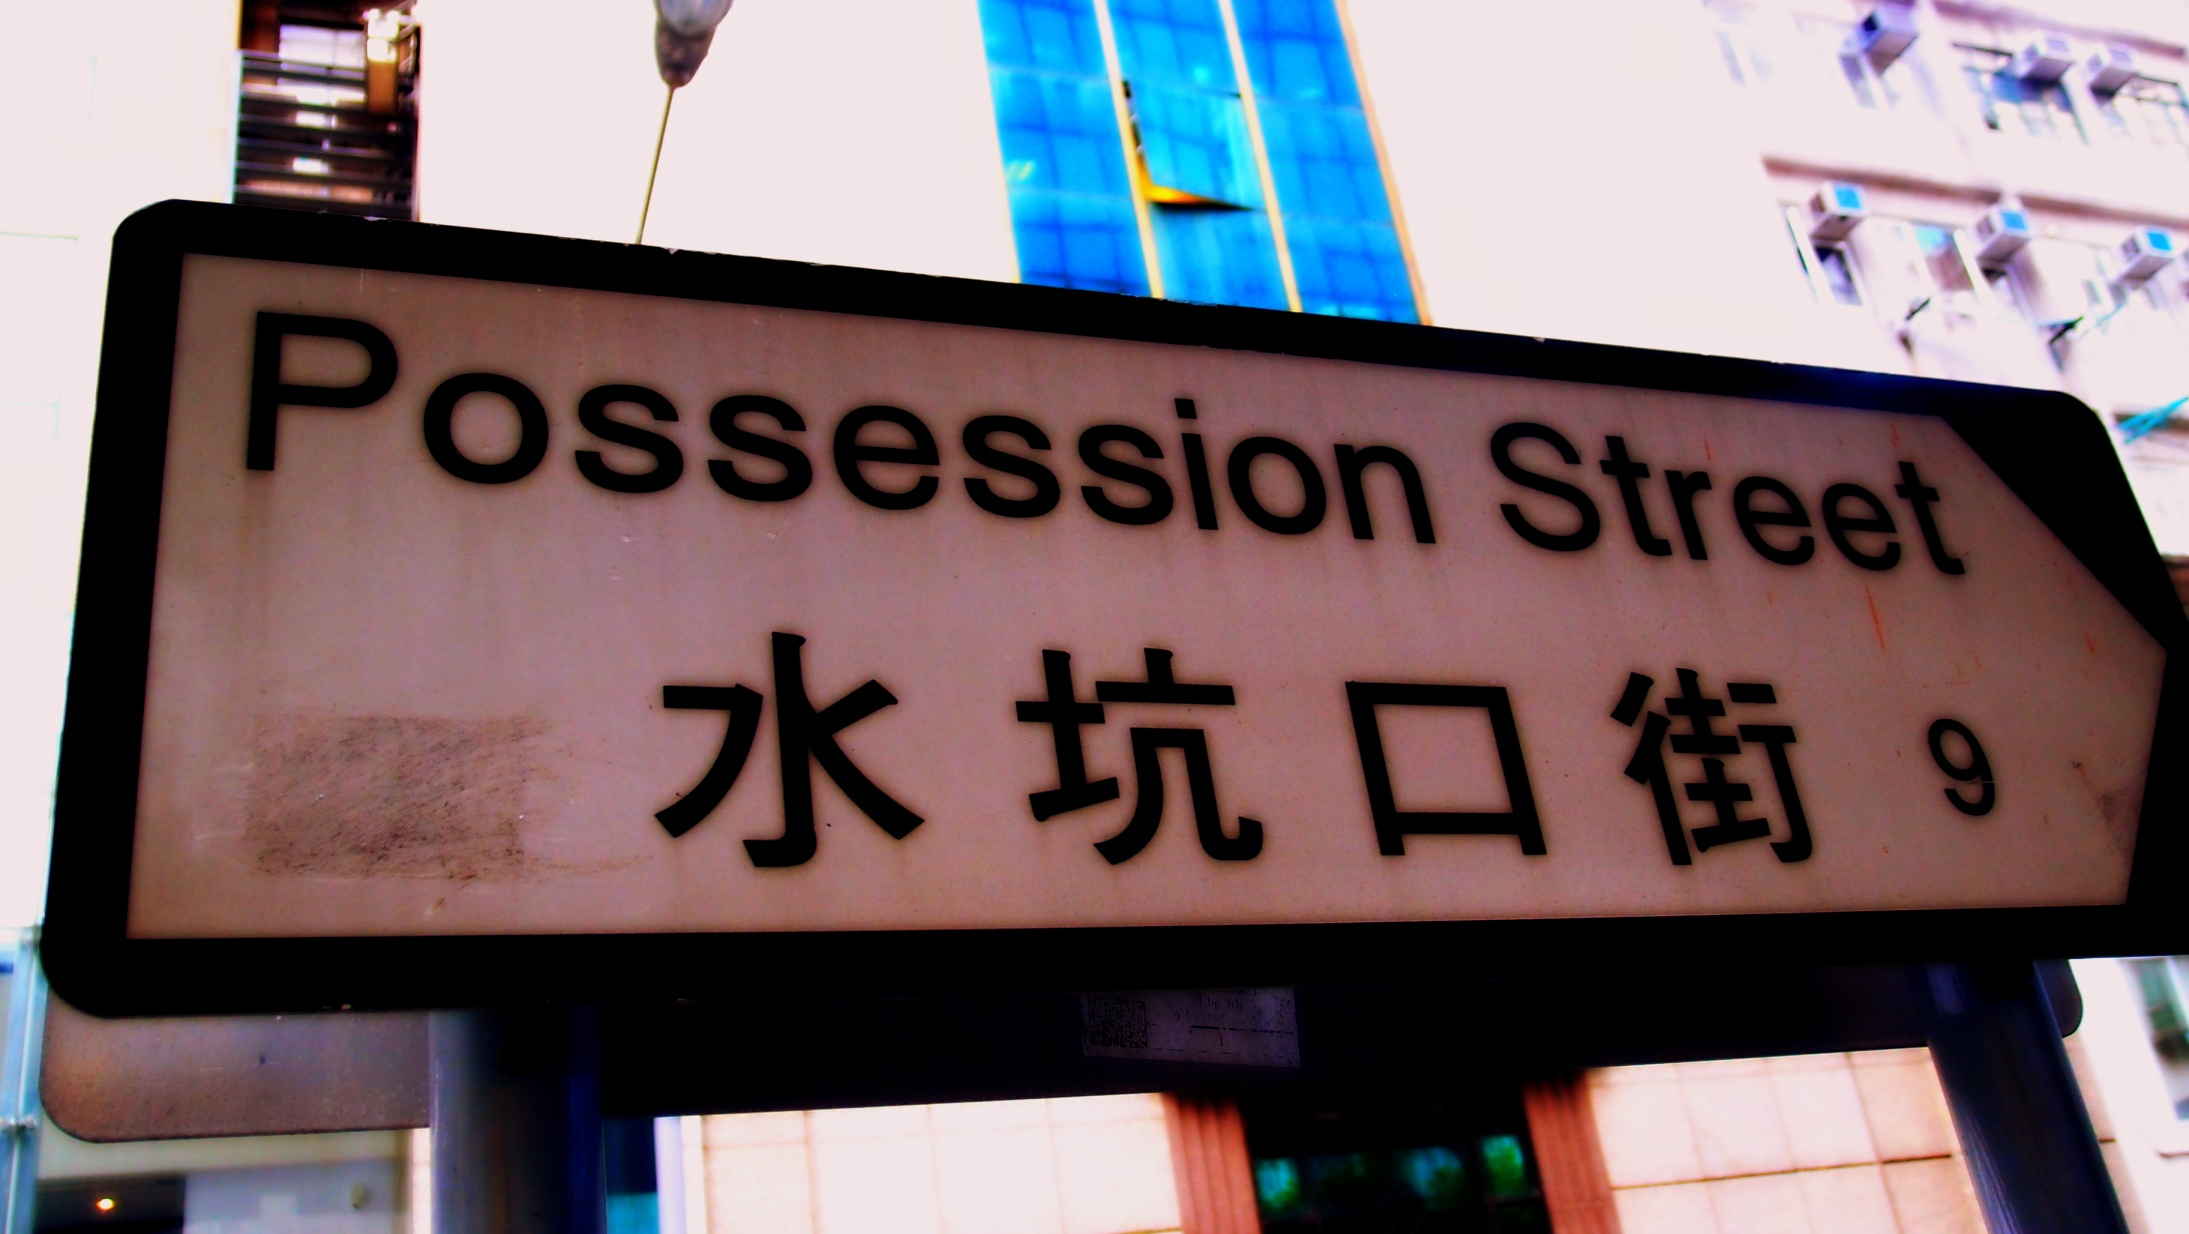 So what's in a name? Possession Street is where the Brits planted a flag to claim Hong Kong in January 1841, do not expect to find any recognition of this historical site.